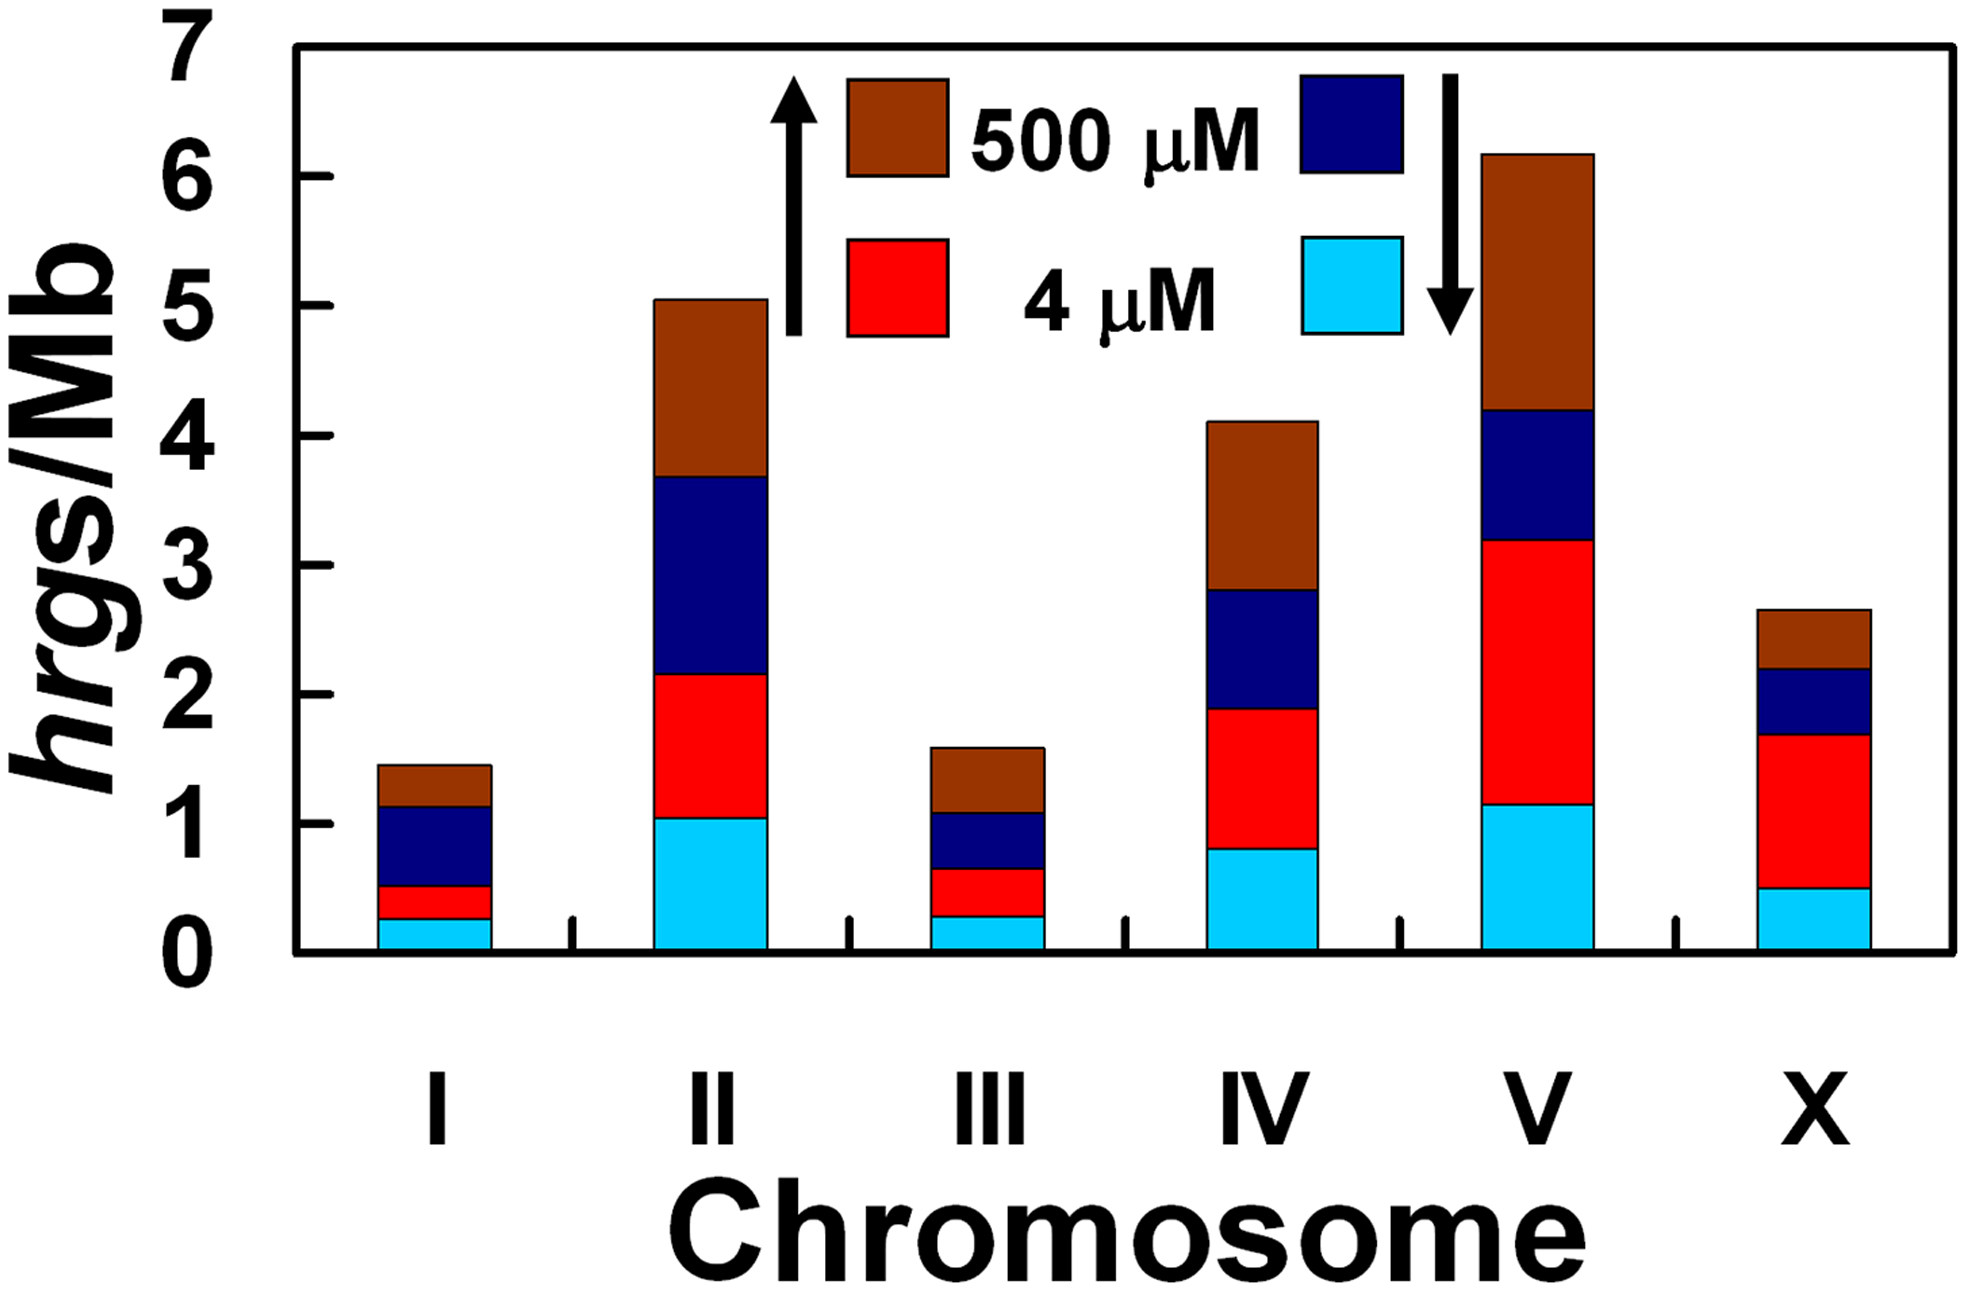 Depiction of the number of <i>hrgs</i> found on each chromosome relative to the number of megabases in that chromosome.